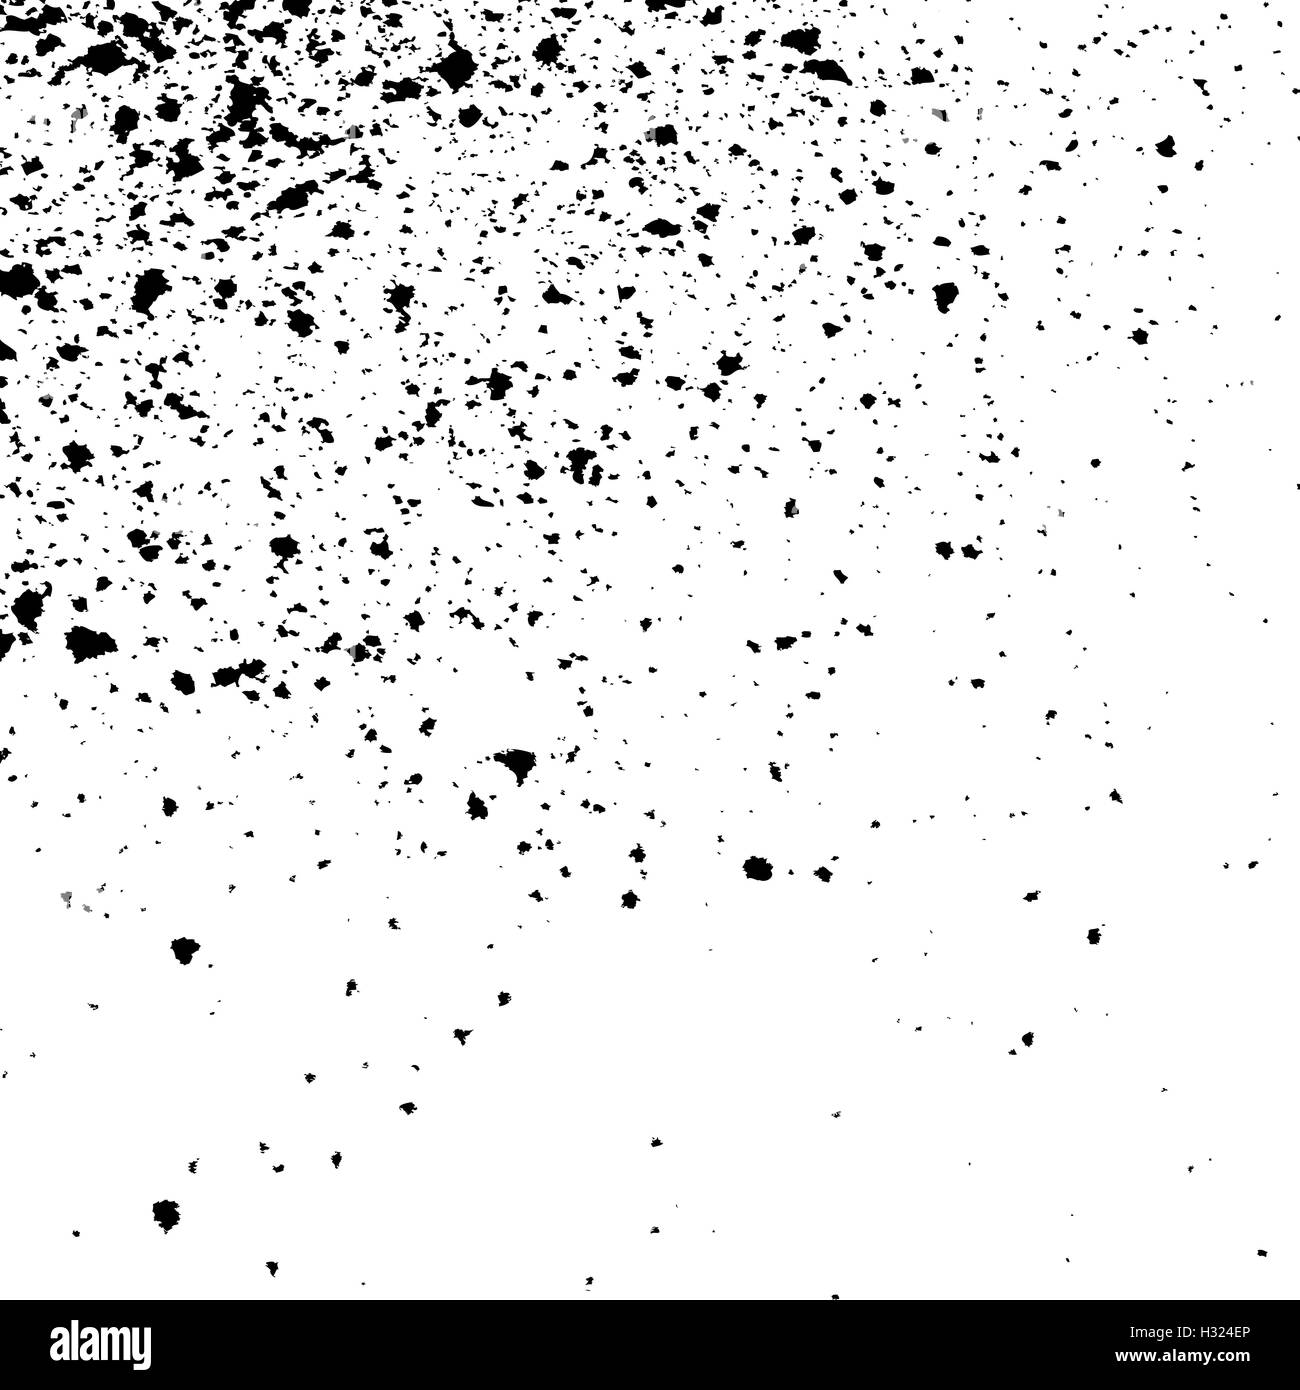 black ink paint splatter on white background spray paint abstract